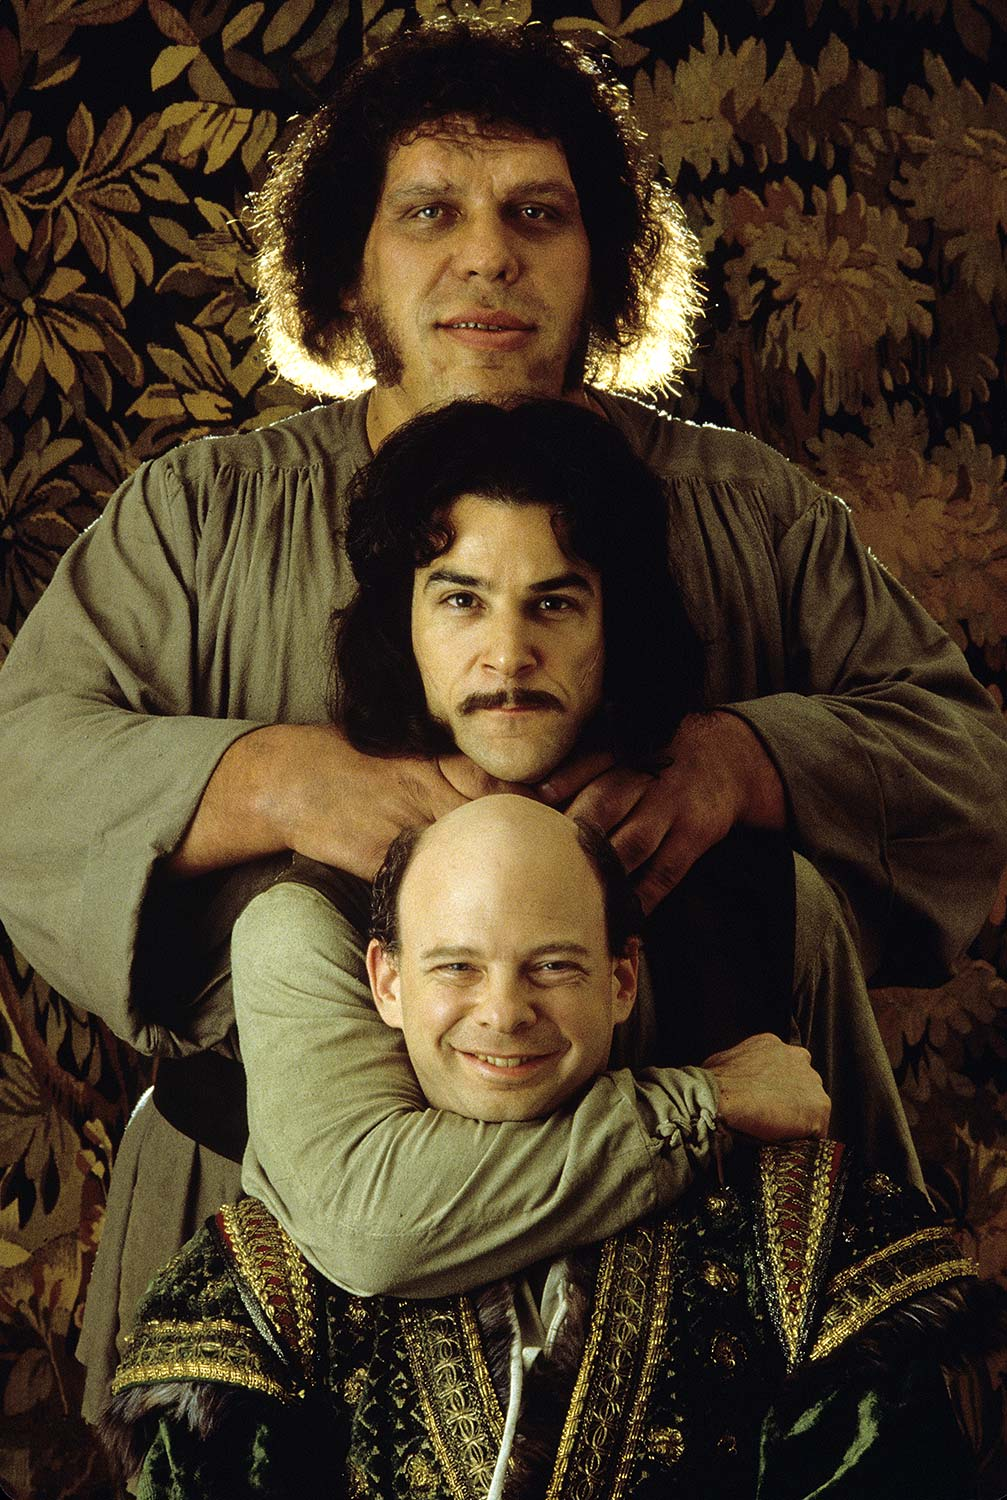 Andre the Giant, Mandy Patinkin and Wallace Shawn